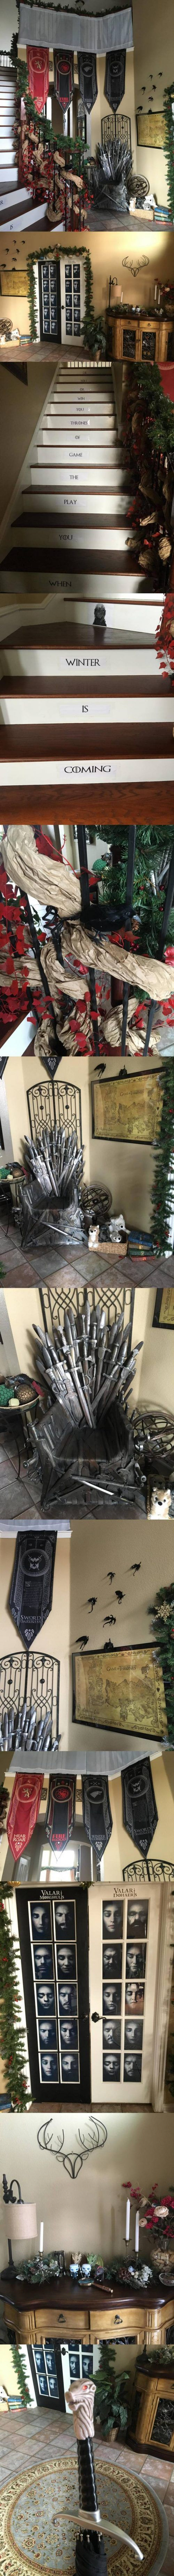 Look at Game of Thrones Fan House, He is the Biggest Fan!